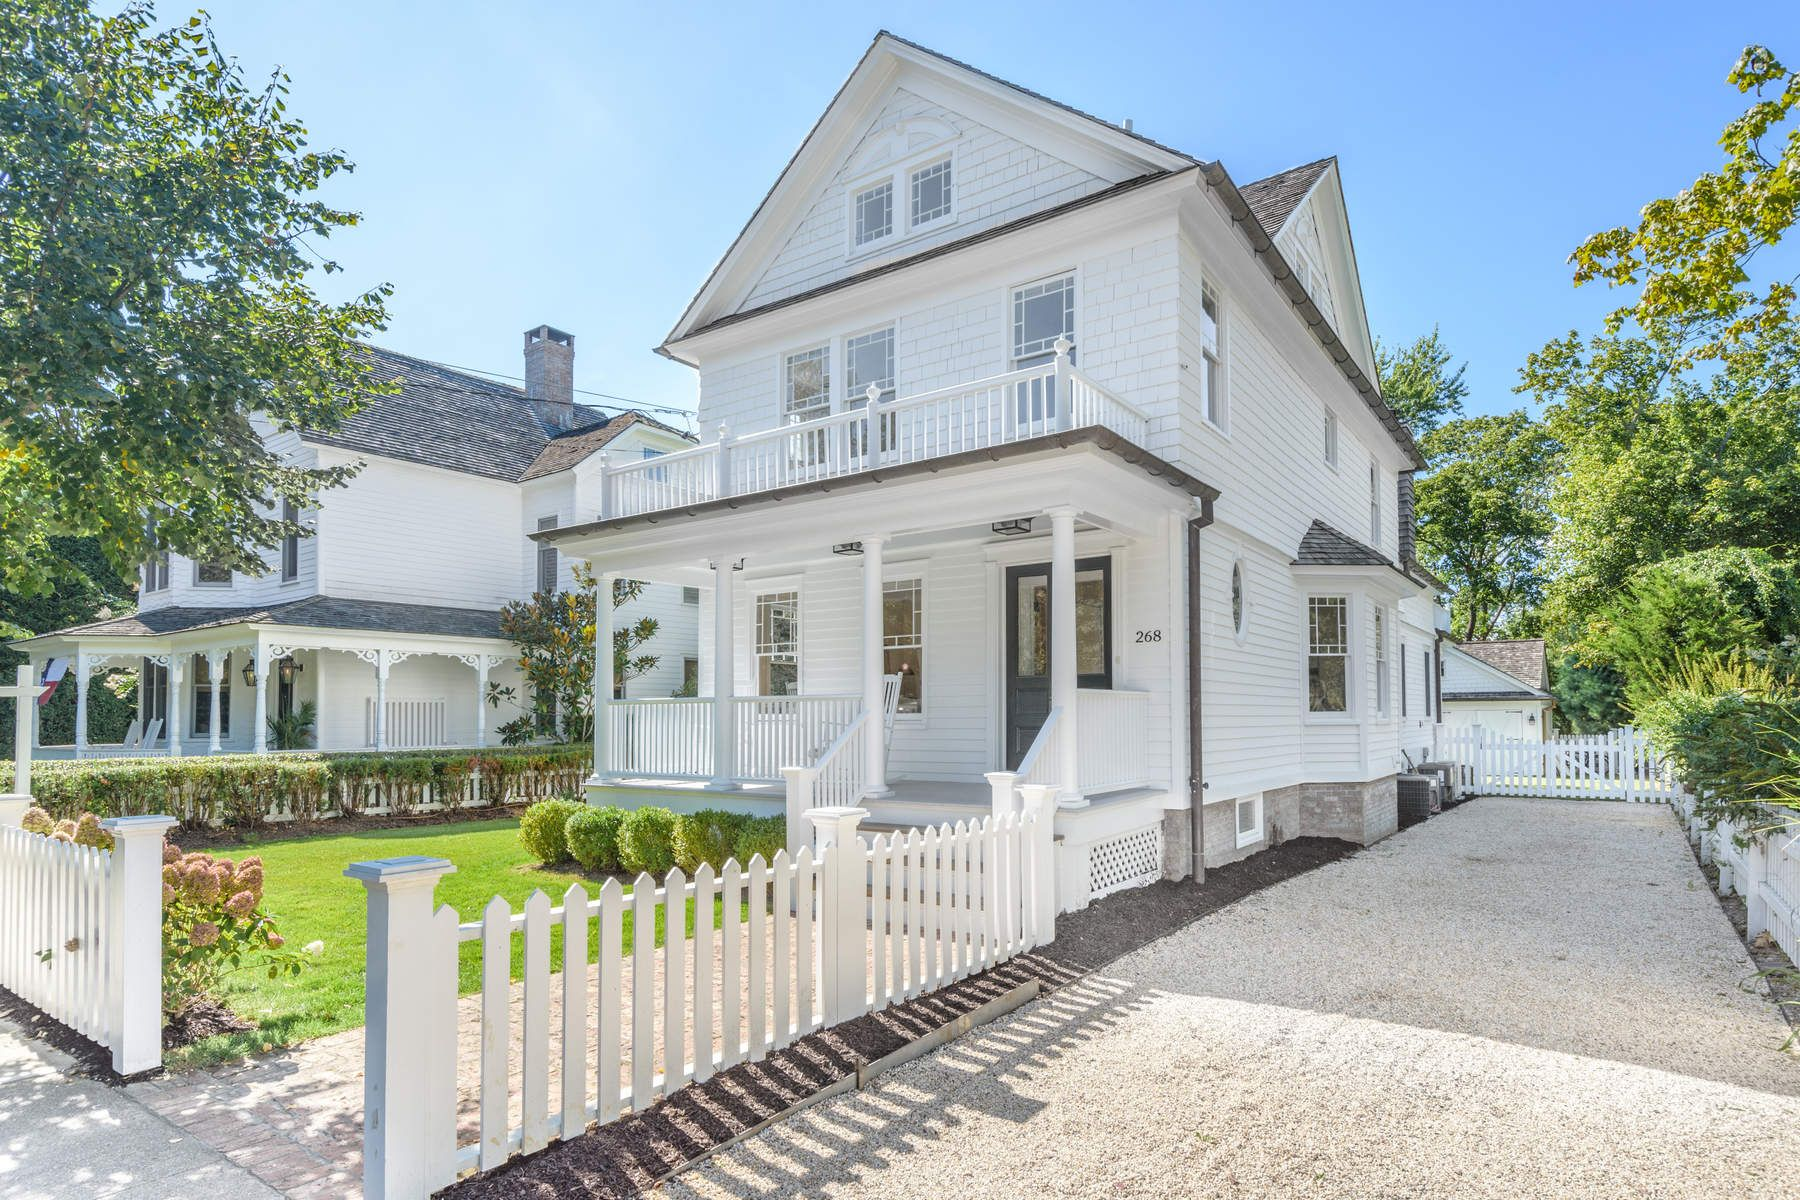 Single Family Home for Sale at Main Street Sag Harbor 268 Main Street, Sag Harbor, New York, 11963 United States